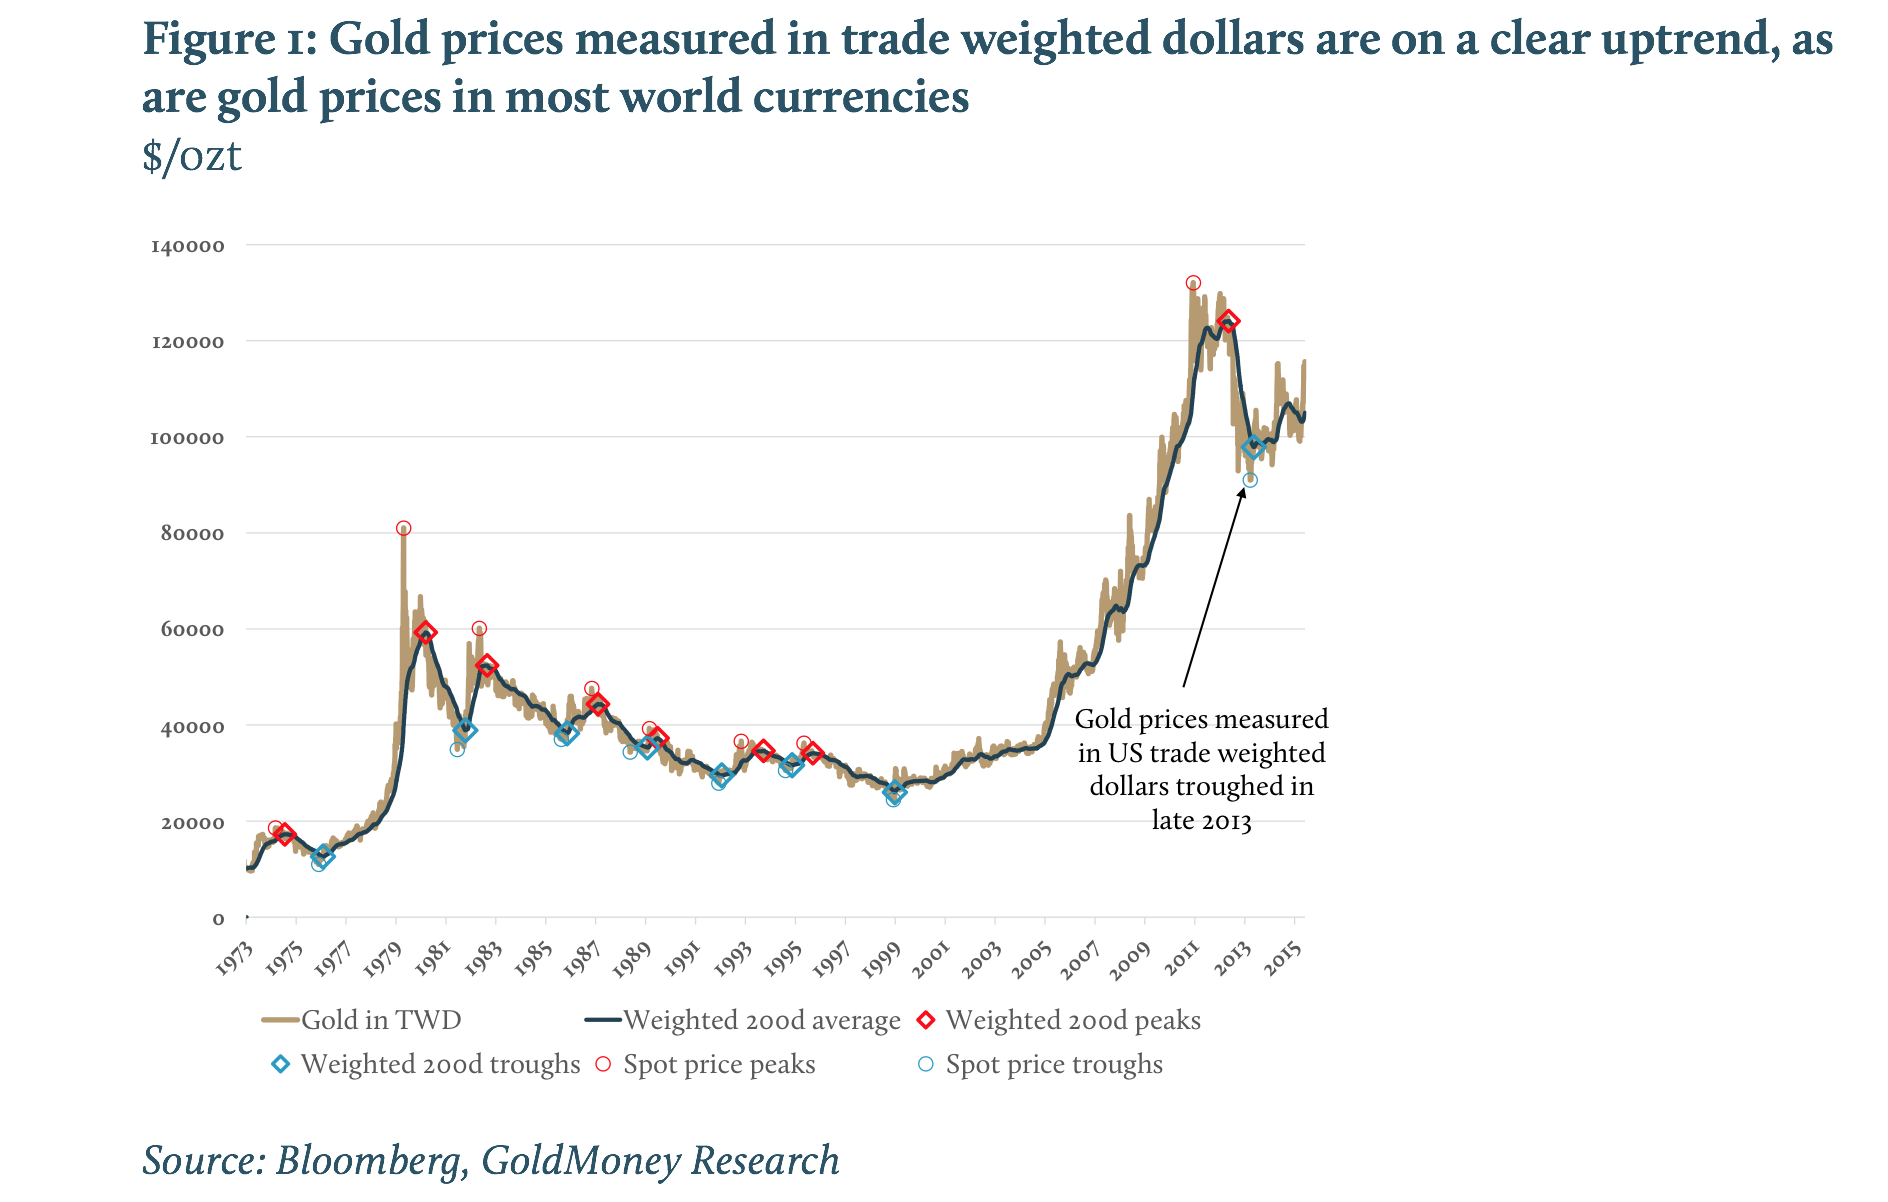 Gold prices measured in trade weighted dollars are on a clear uptrend